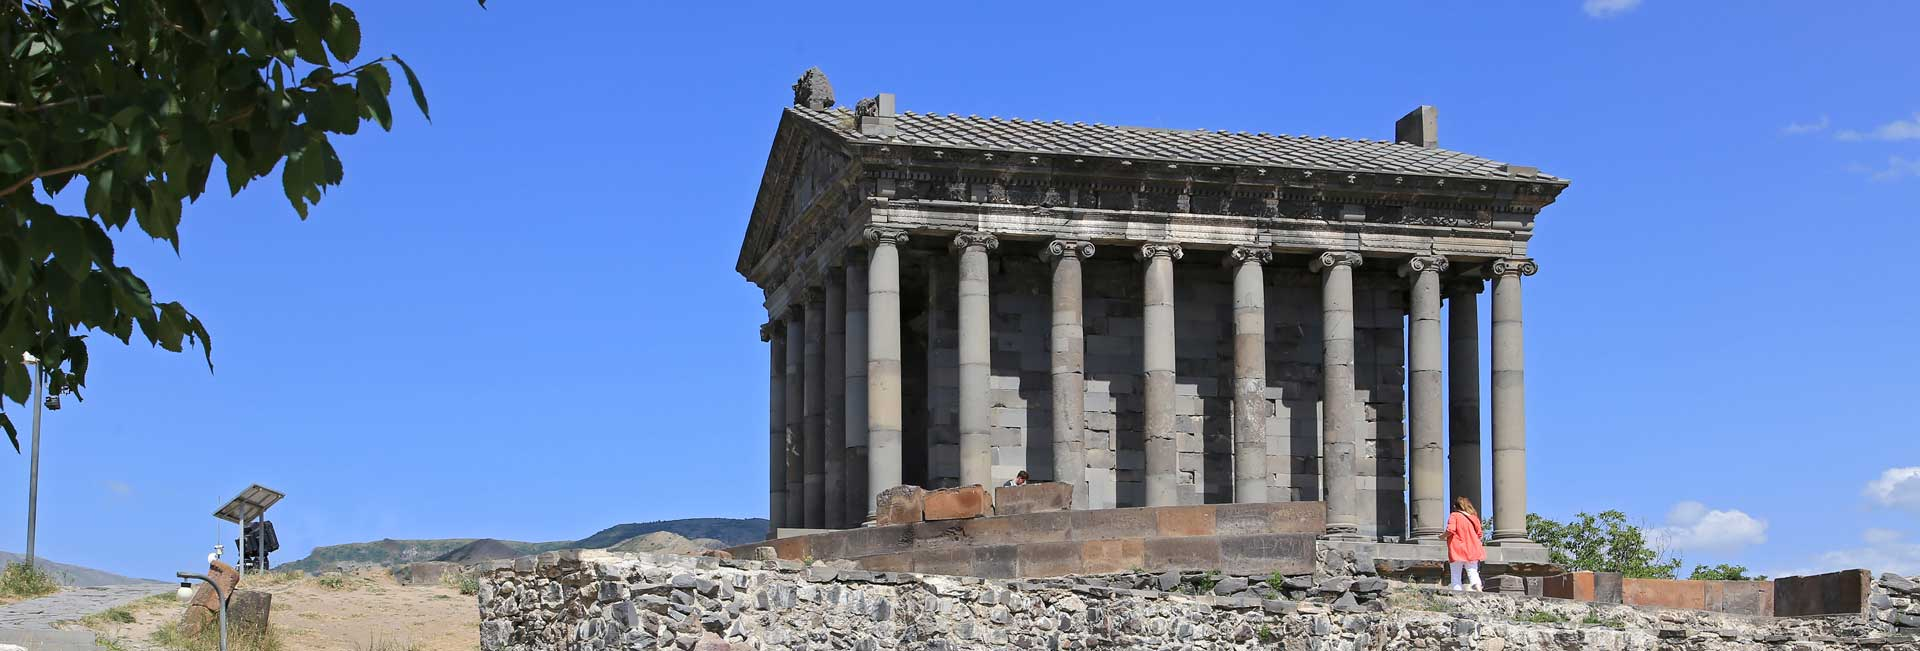 Temple of Garni, Armenia. Photo credit: Ann Schenider